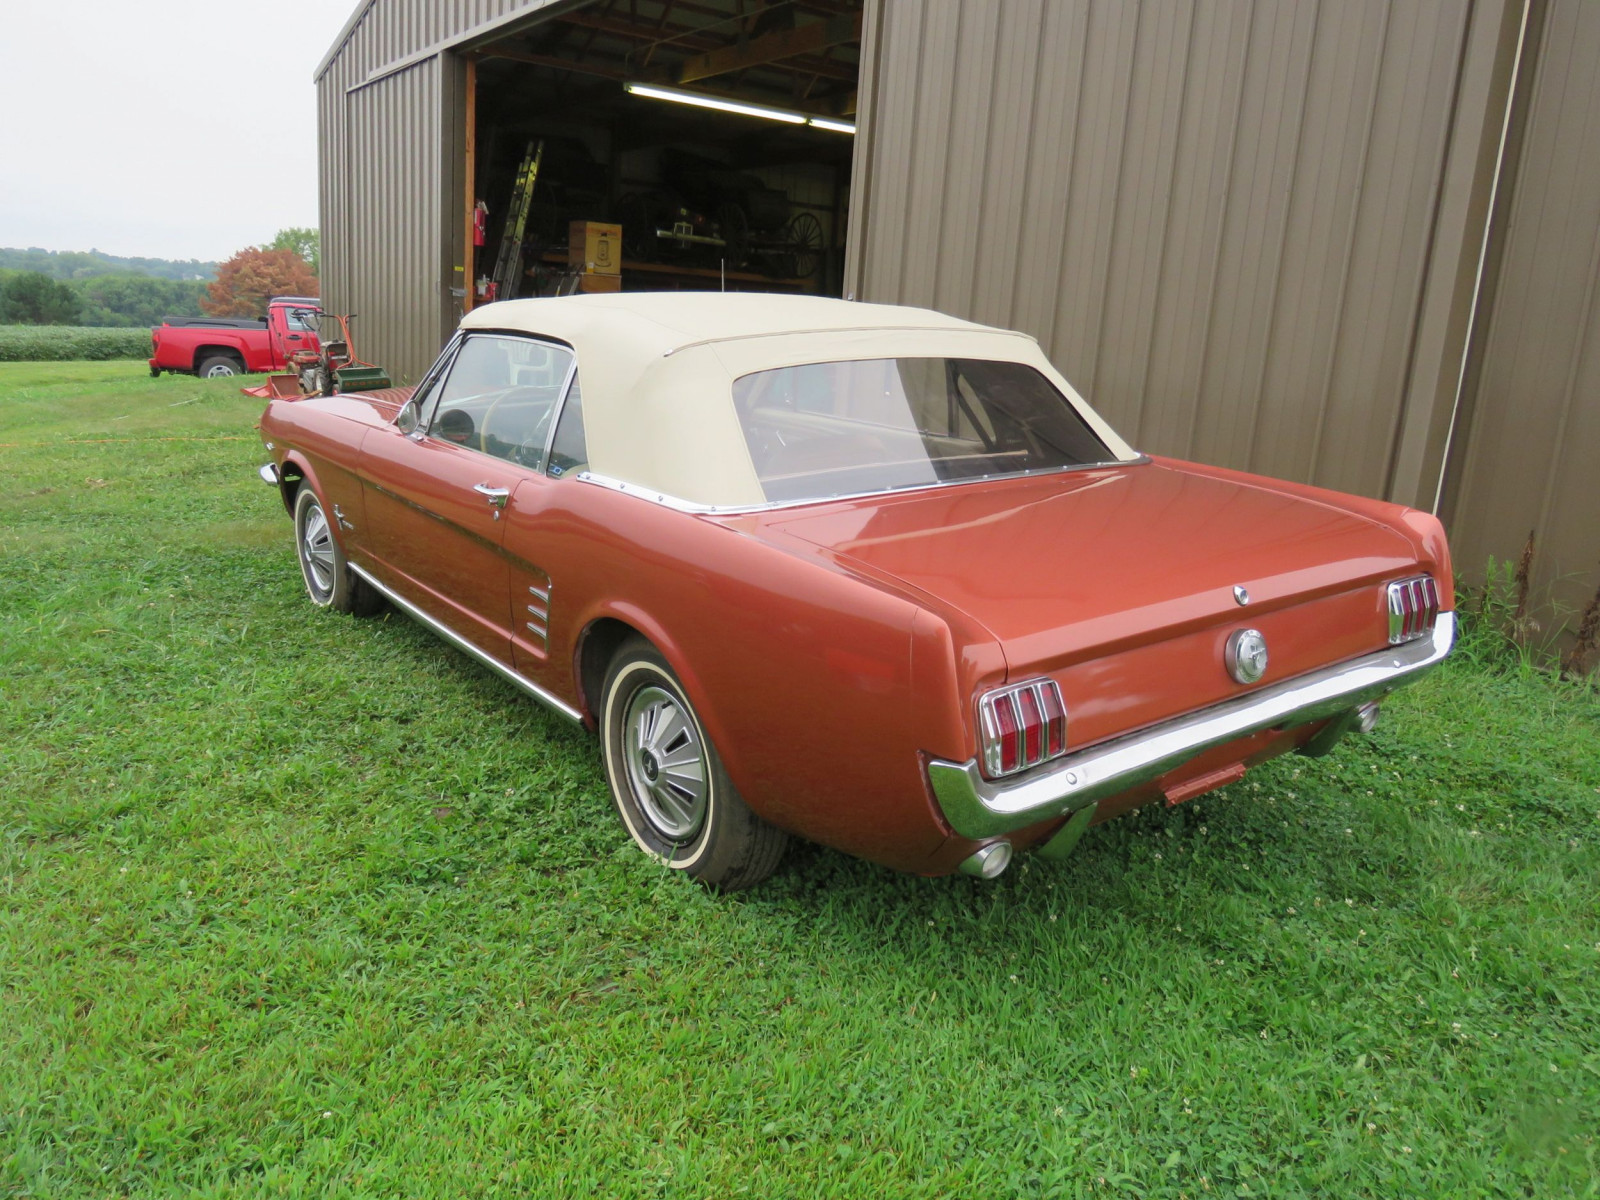 1966 Ford Mustang Convertible - Image 6